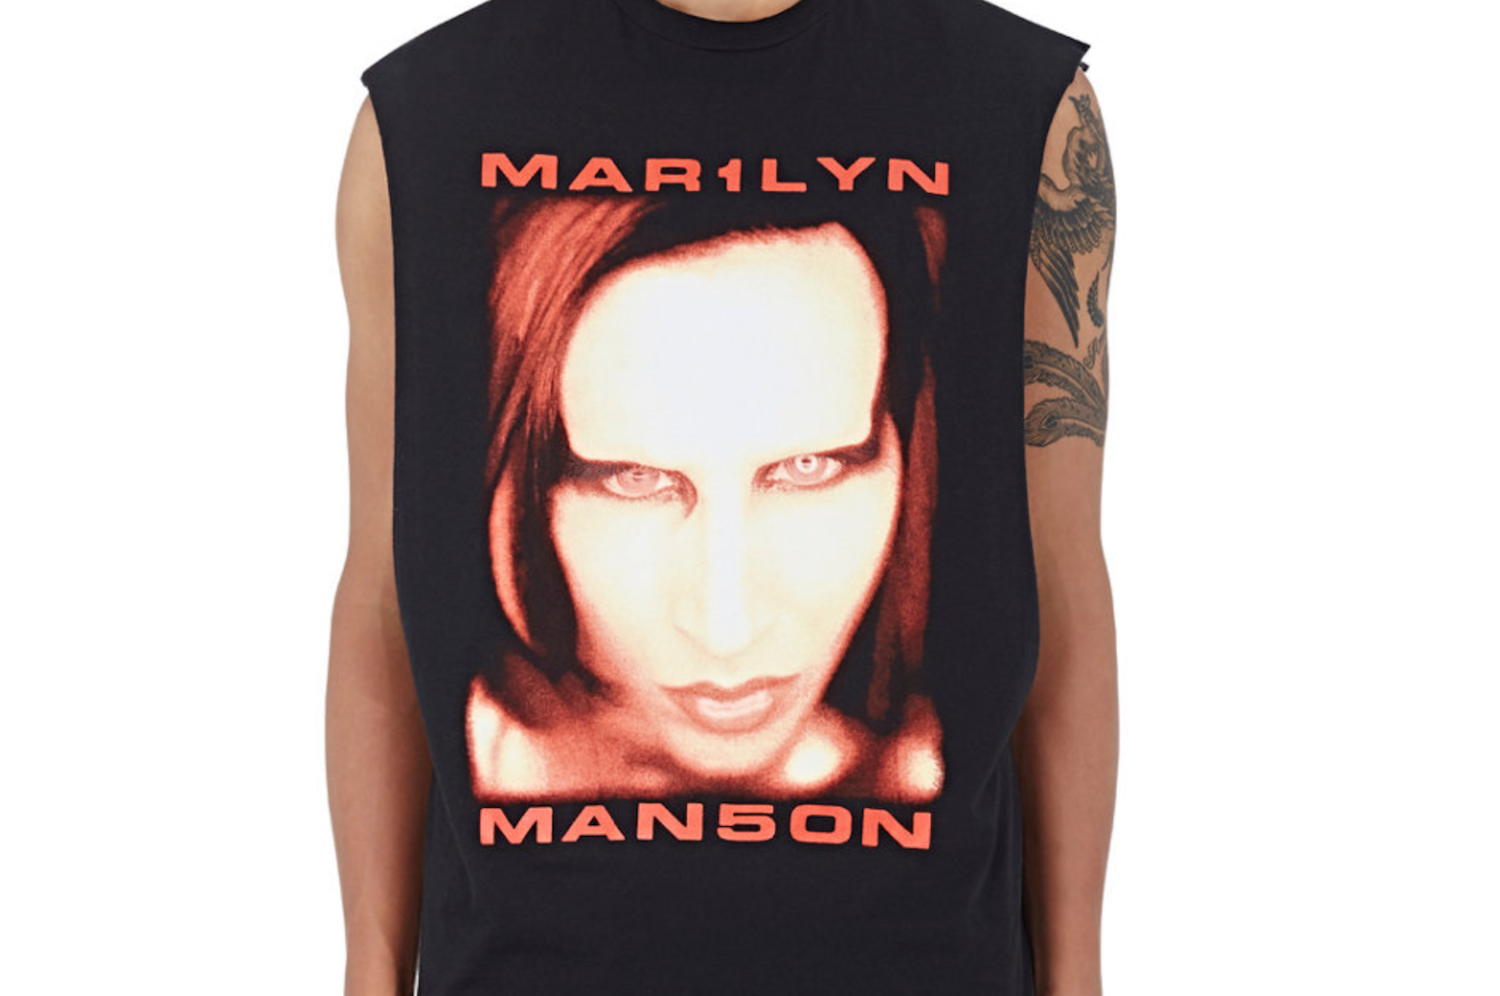 0eb5d519b Justin Bieber passes off Marilyn Manson t-shirt as his own merchandise -  Consequence of Sound | Consequence of Sound